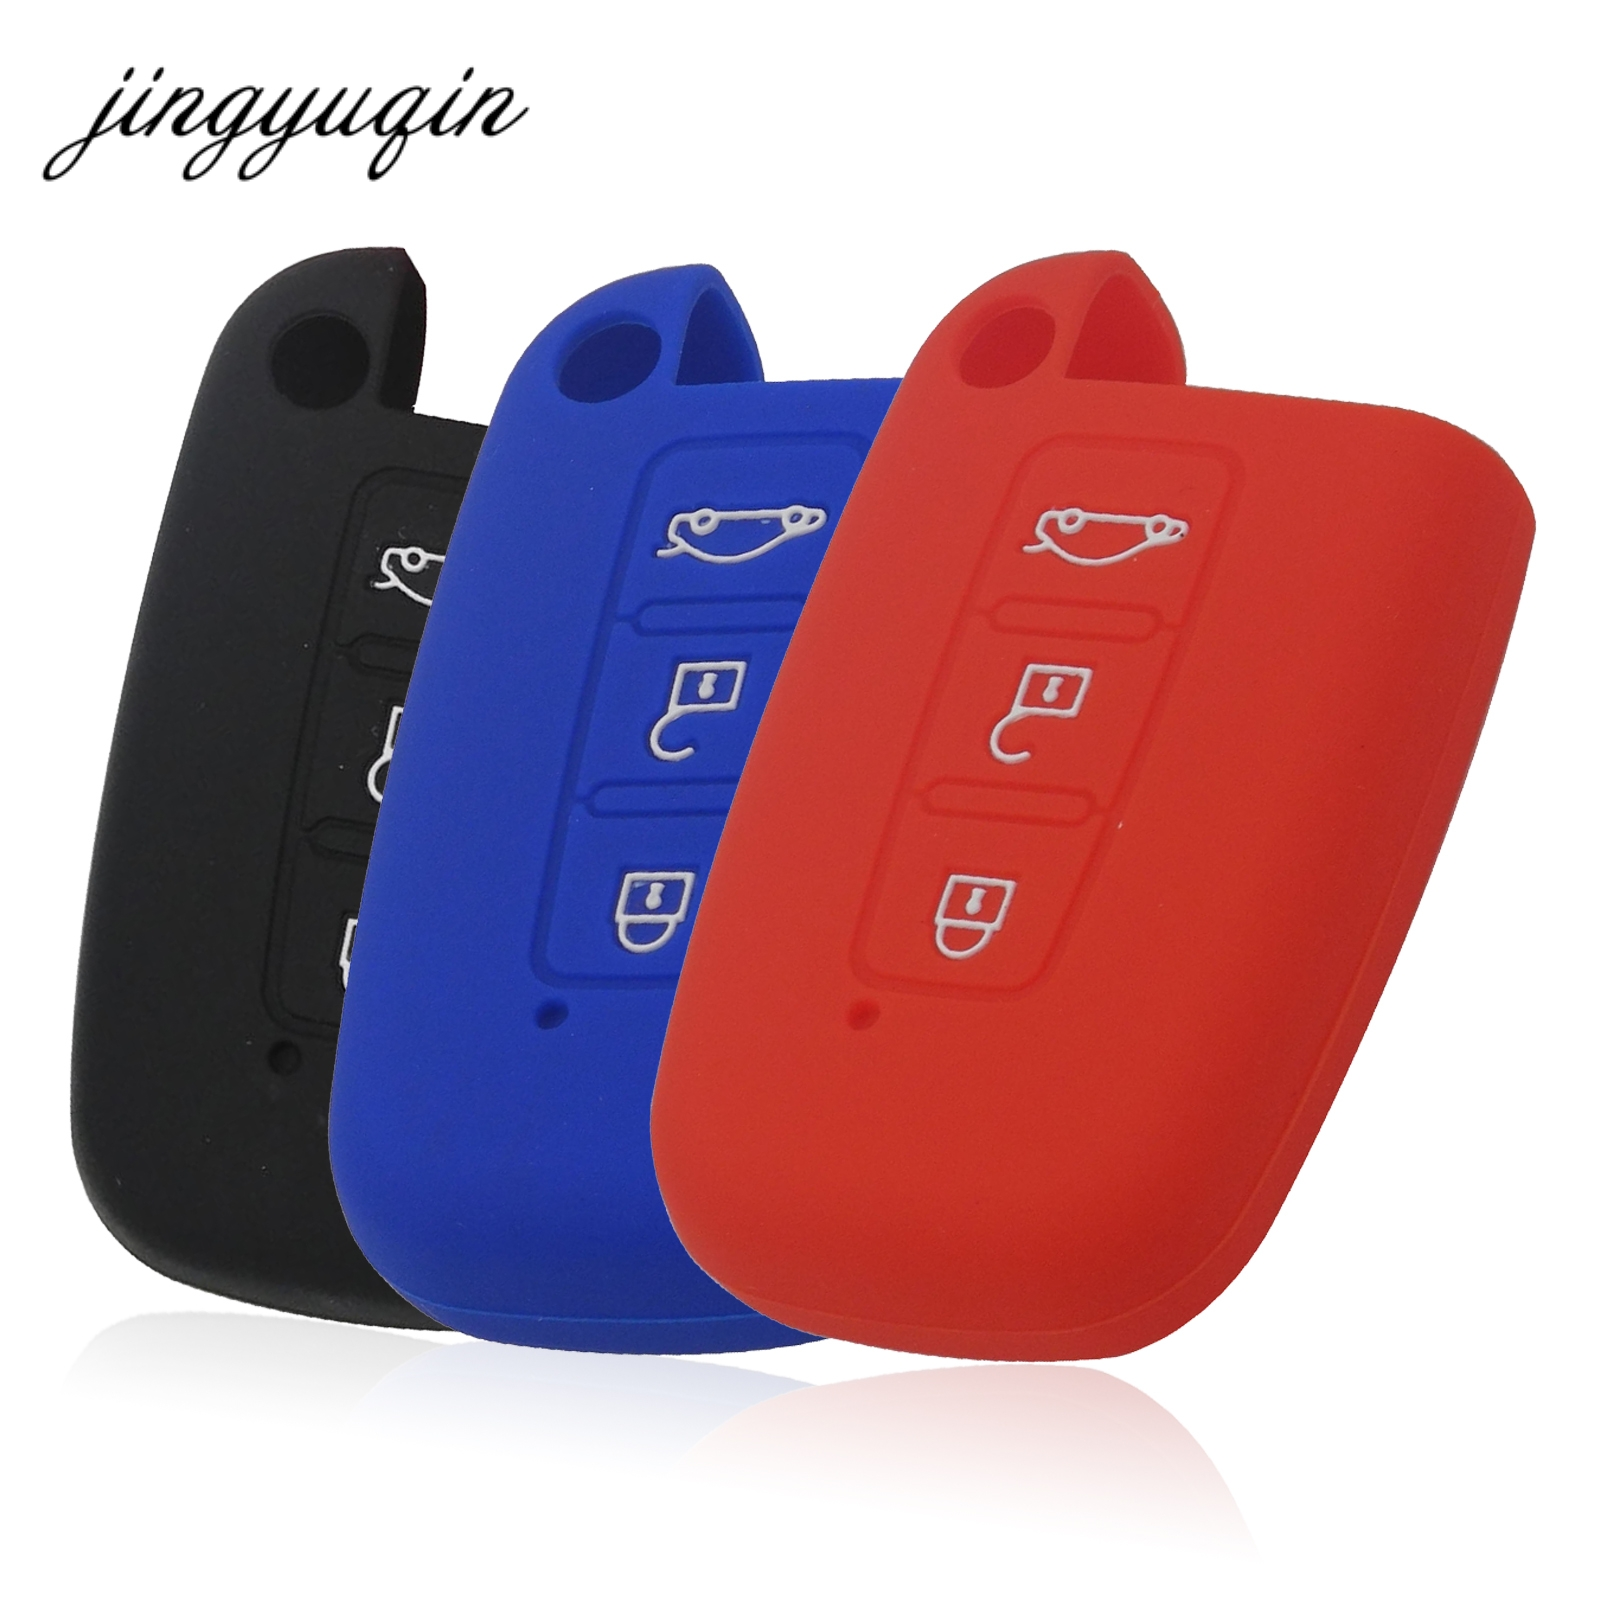 Jingyuqin Silicone Cover Smart Key Case For Hyundai Equus Genesis Veloster For KIA Sportage Forte Optima Soul Azera Sorento